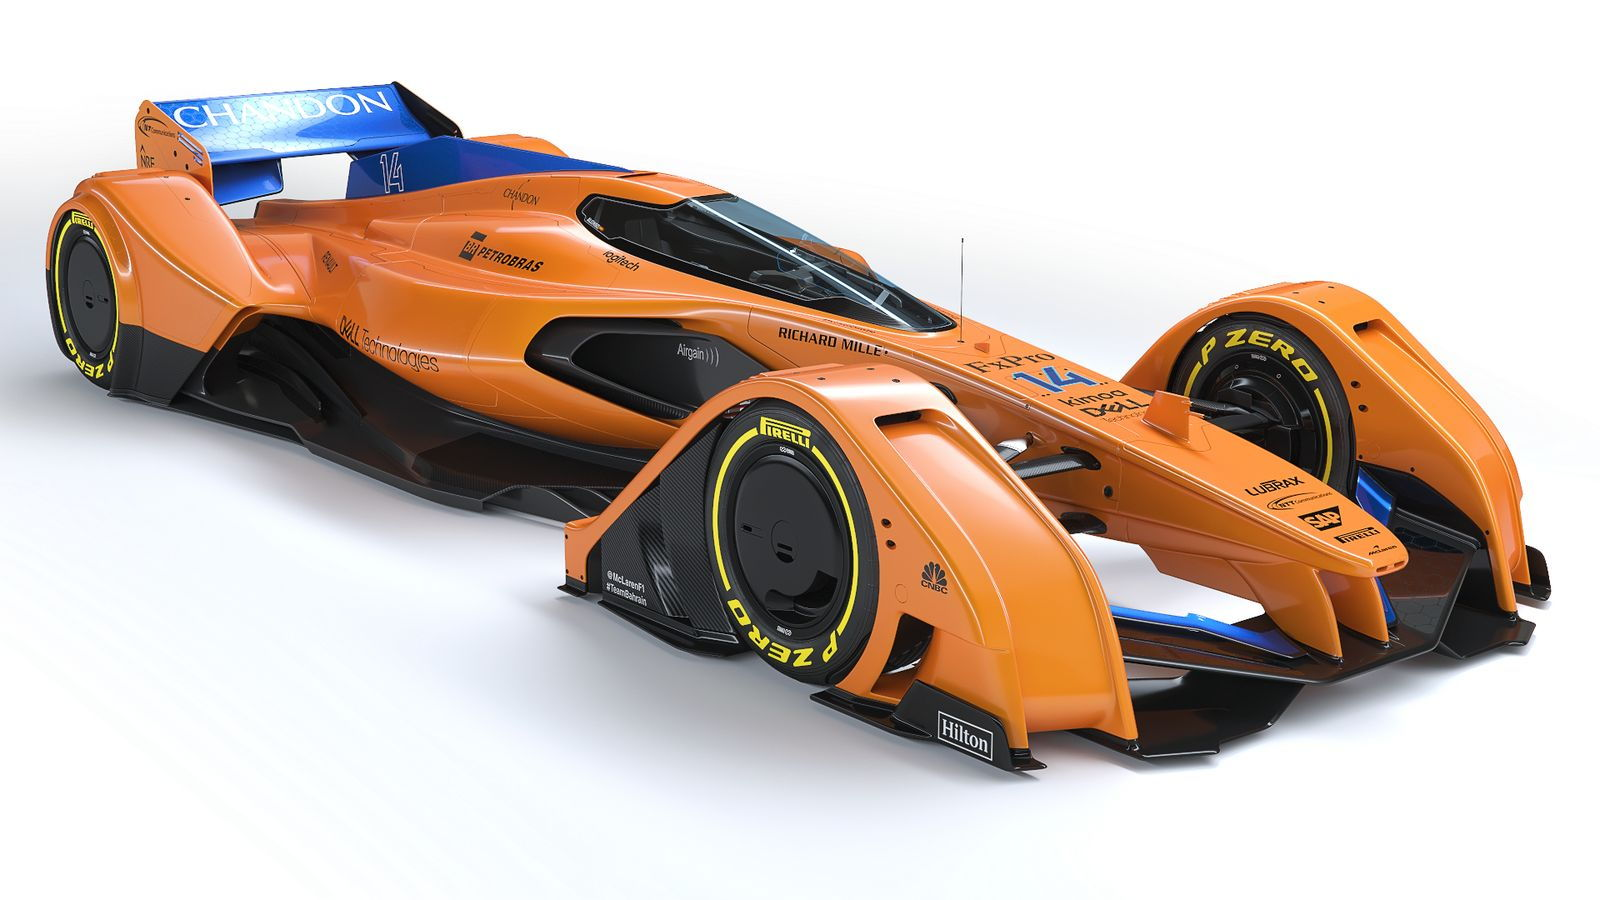 McLaren X2 concept race car with new papaya livery